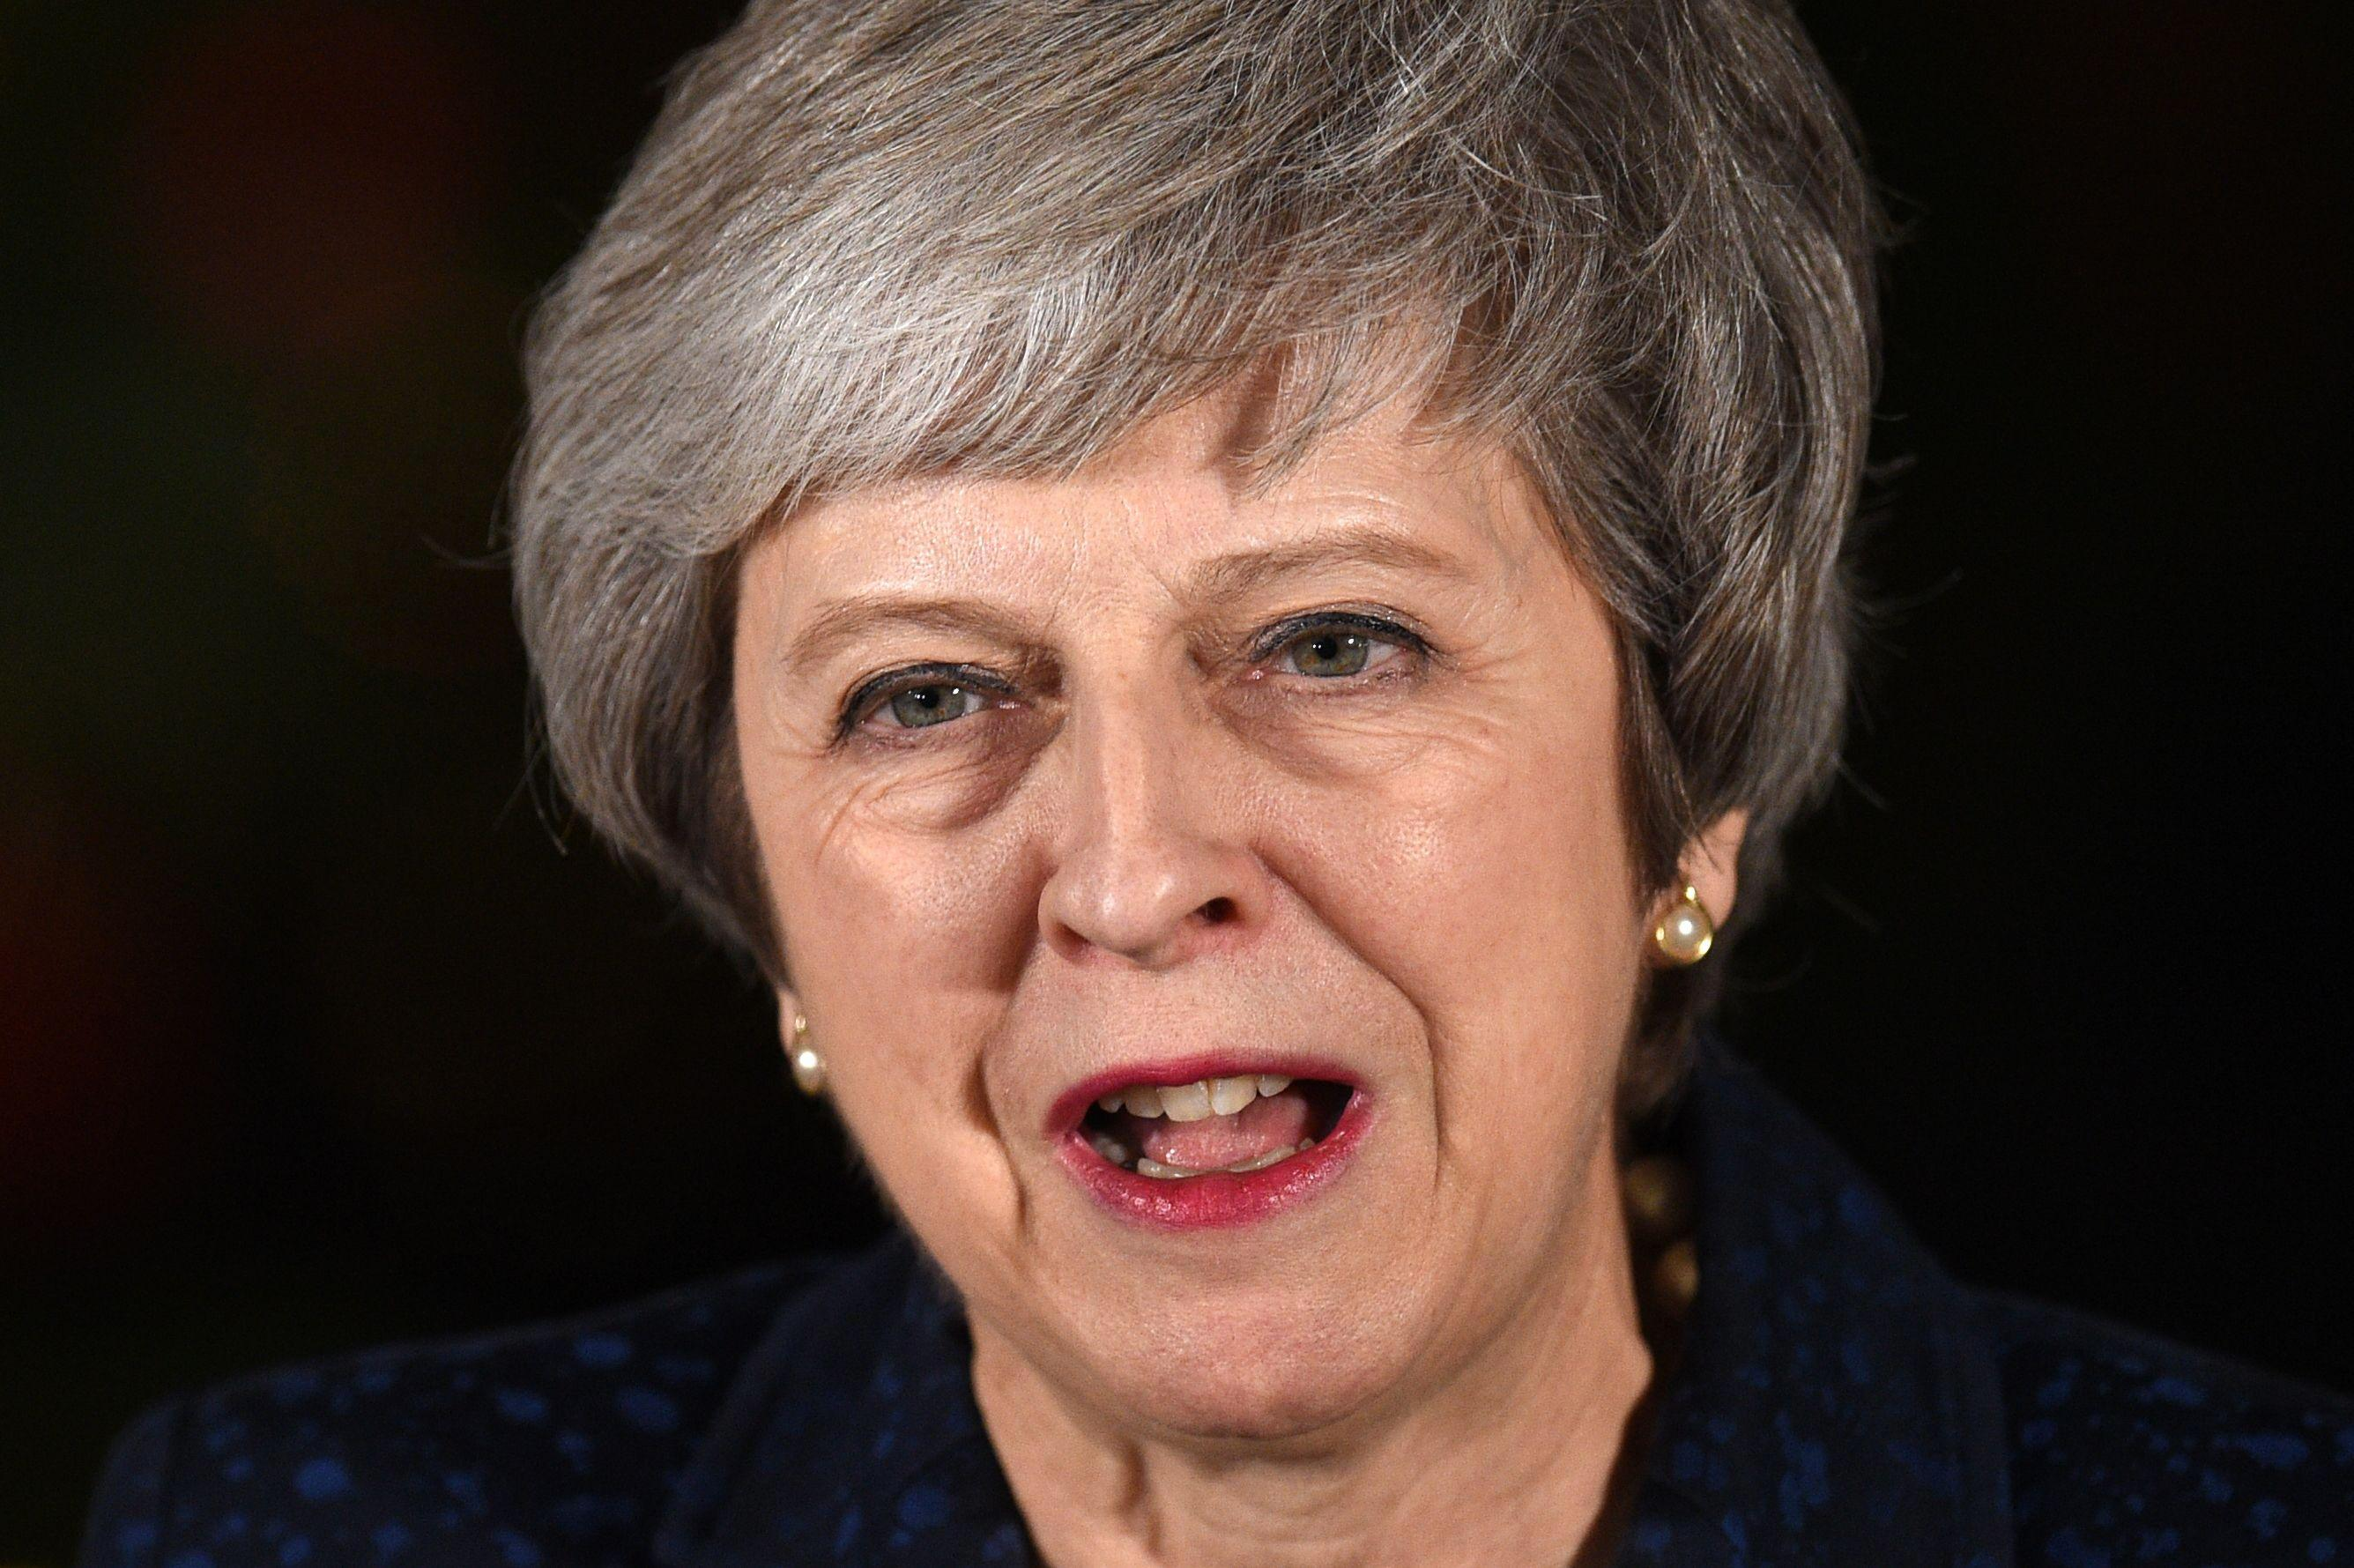 Theresa May MUST now take the DUP's Brexit concerns seriously as their votes are vital to her survival